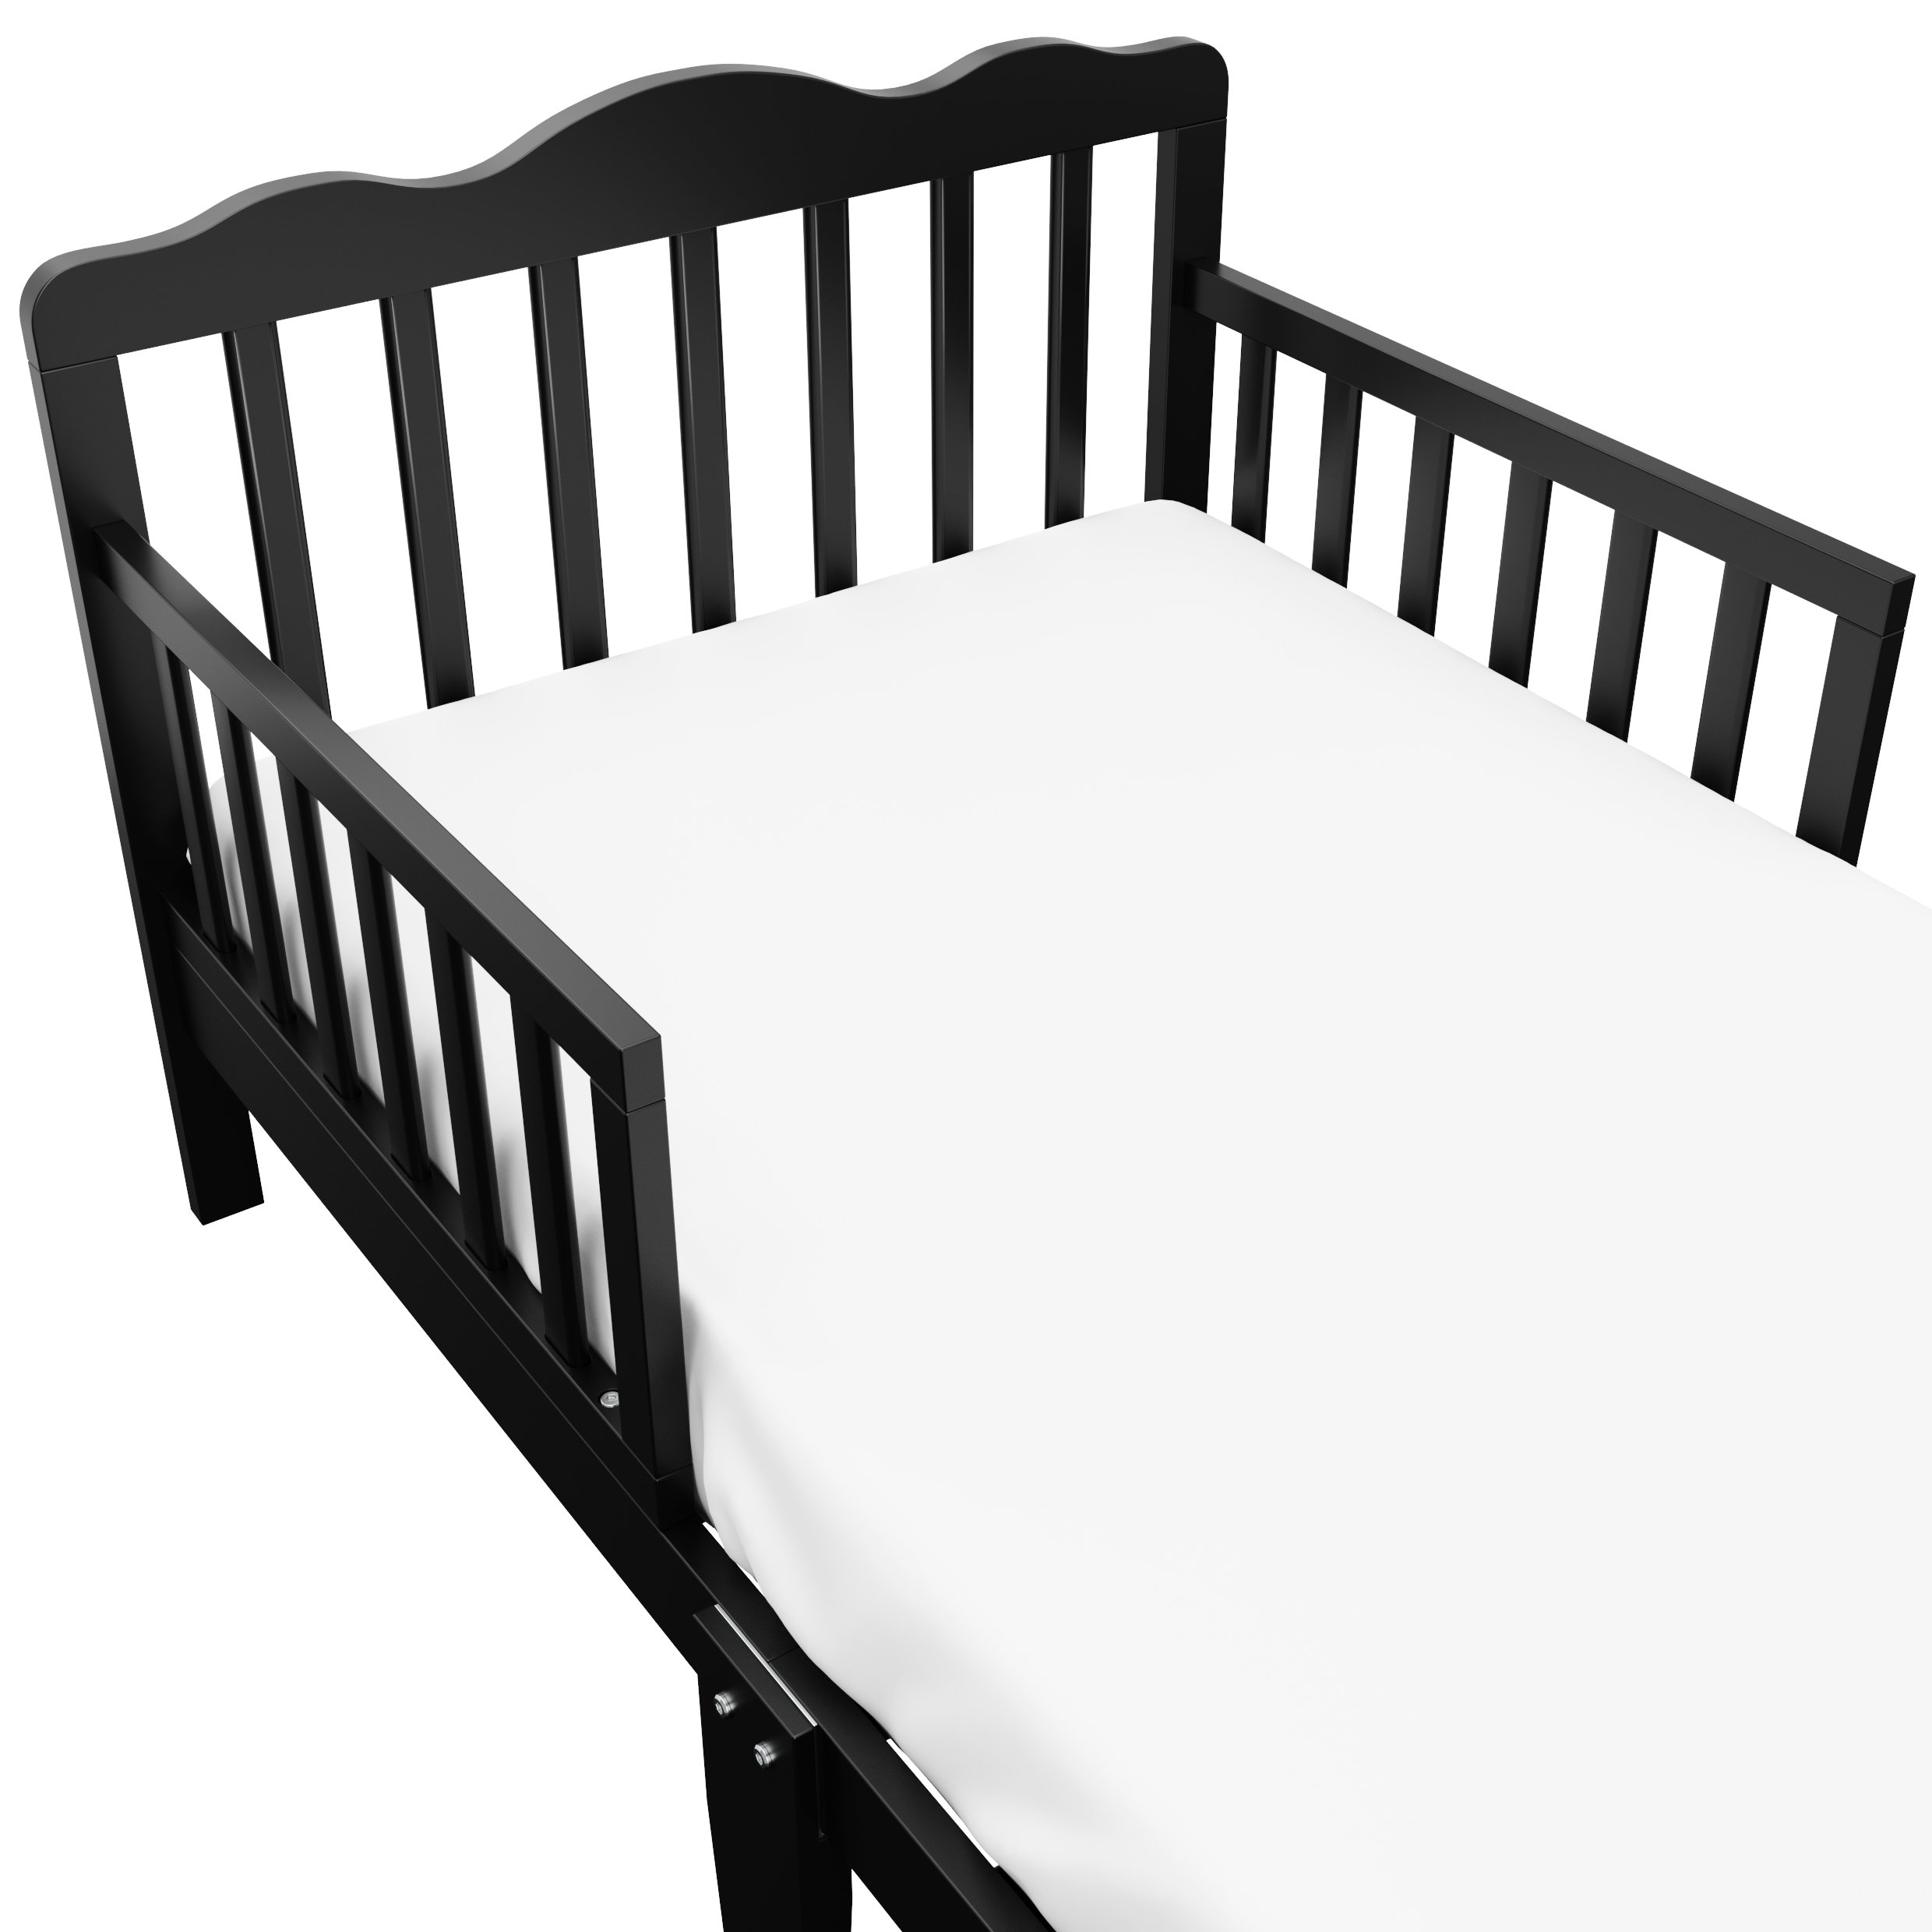 Storkcraft Hillside Toddler Bed Black, Fits Standard-Size Toddler Mattress (Not Included), Guardrails on Both Sides, Meets or Exceeds All Federal Safety Standards, Pine & Composite Construction by Stork Craft (Image #4)